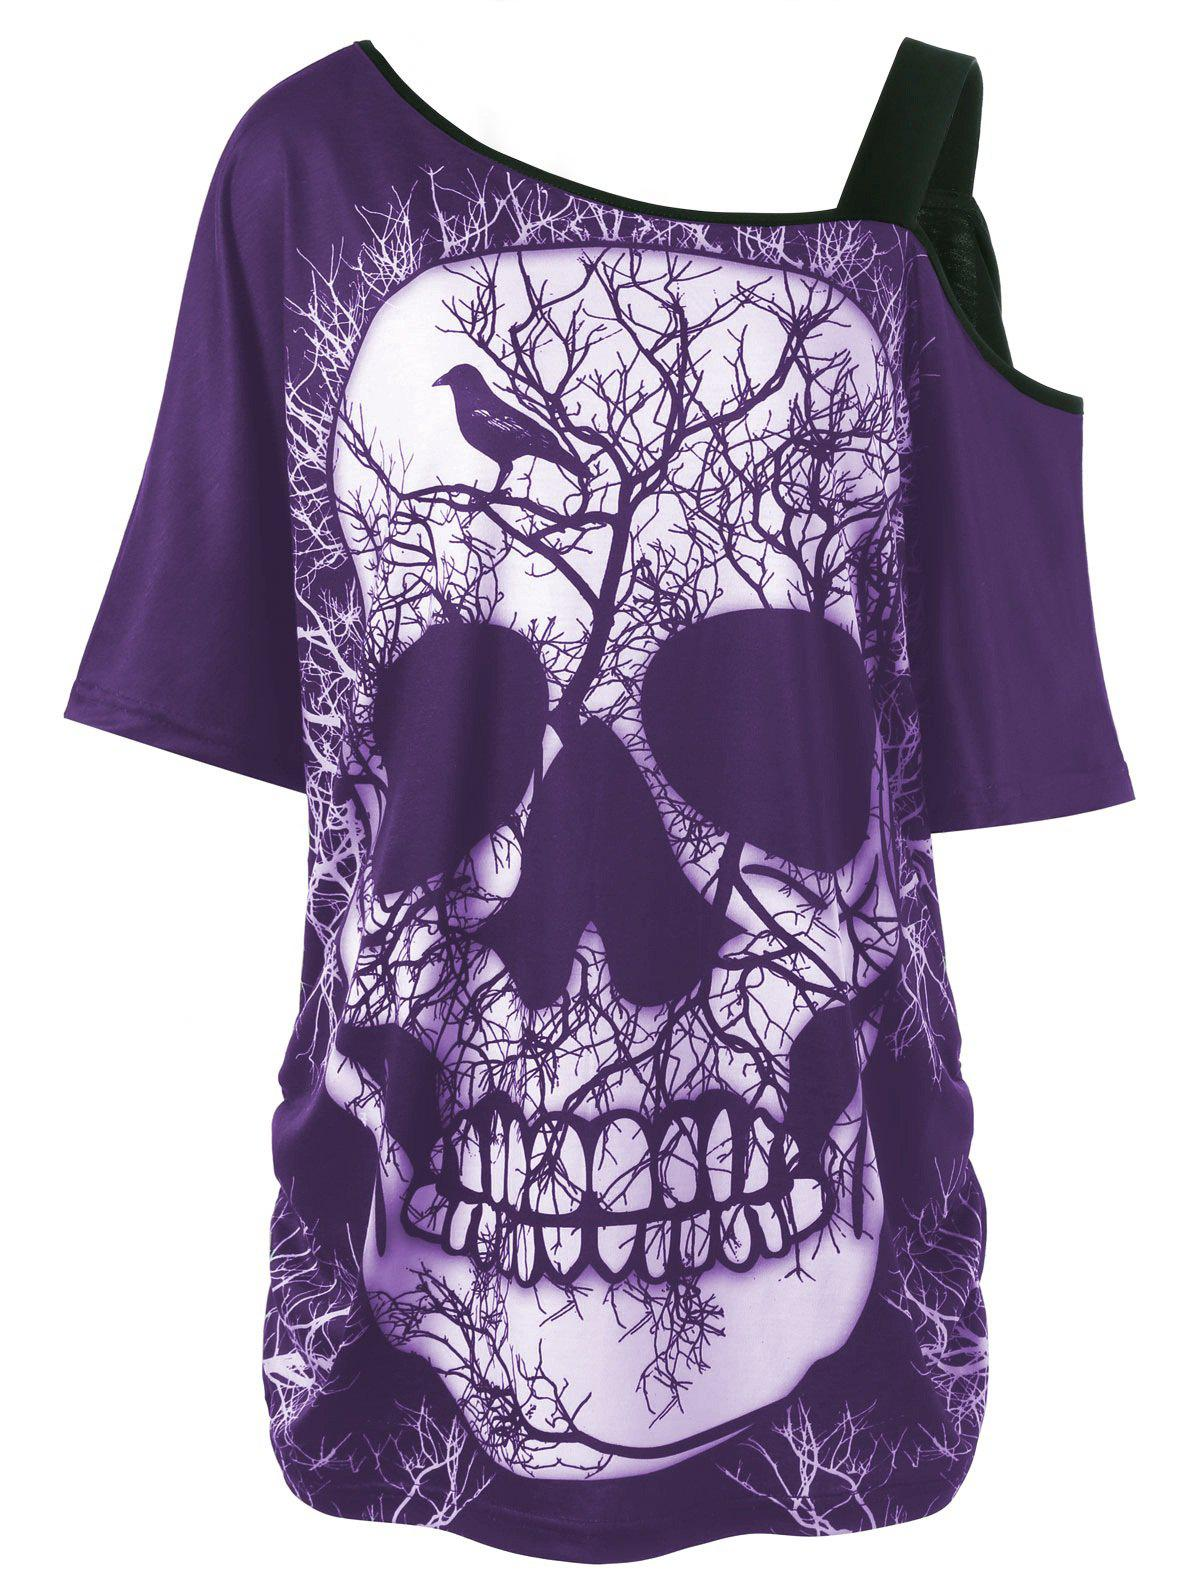 Plus Size Skew Collar Skull T-shirt - PURPLE XL